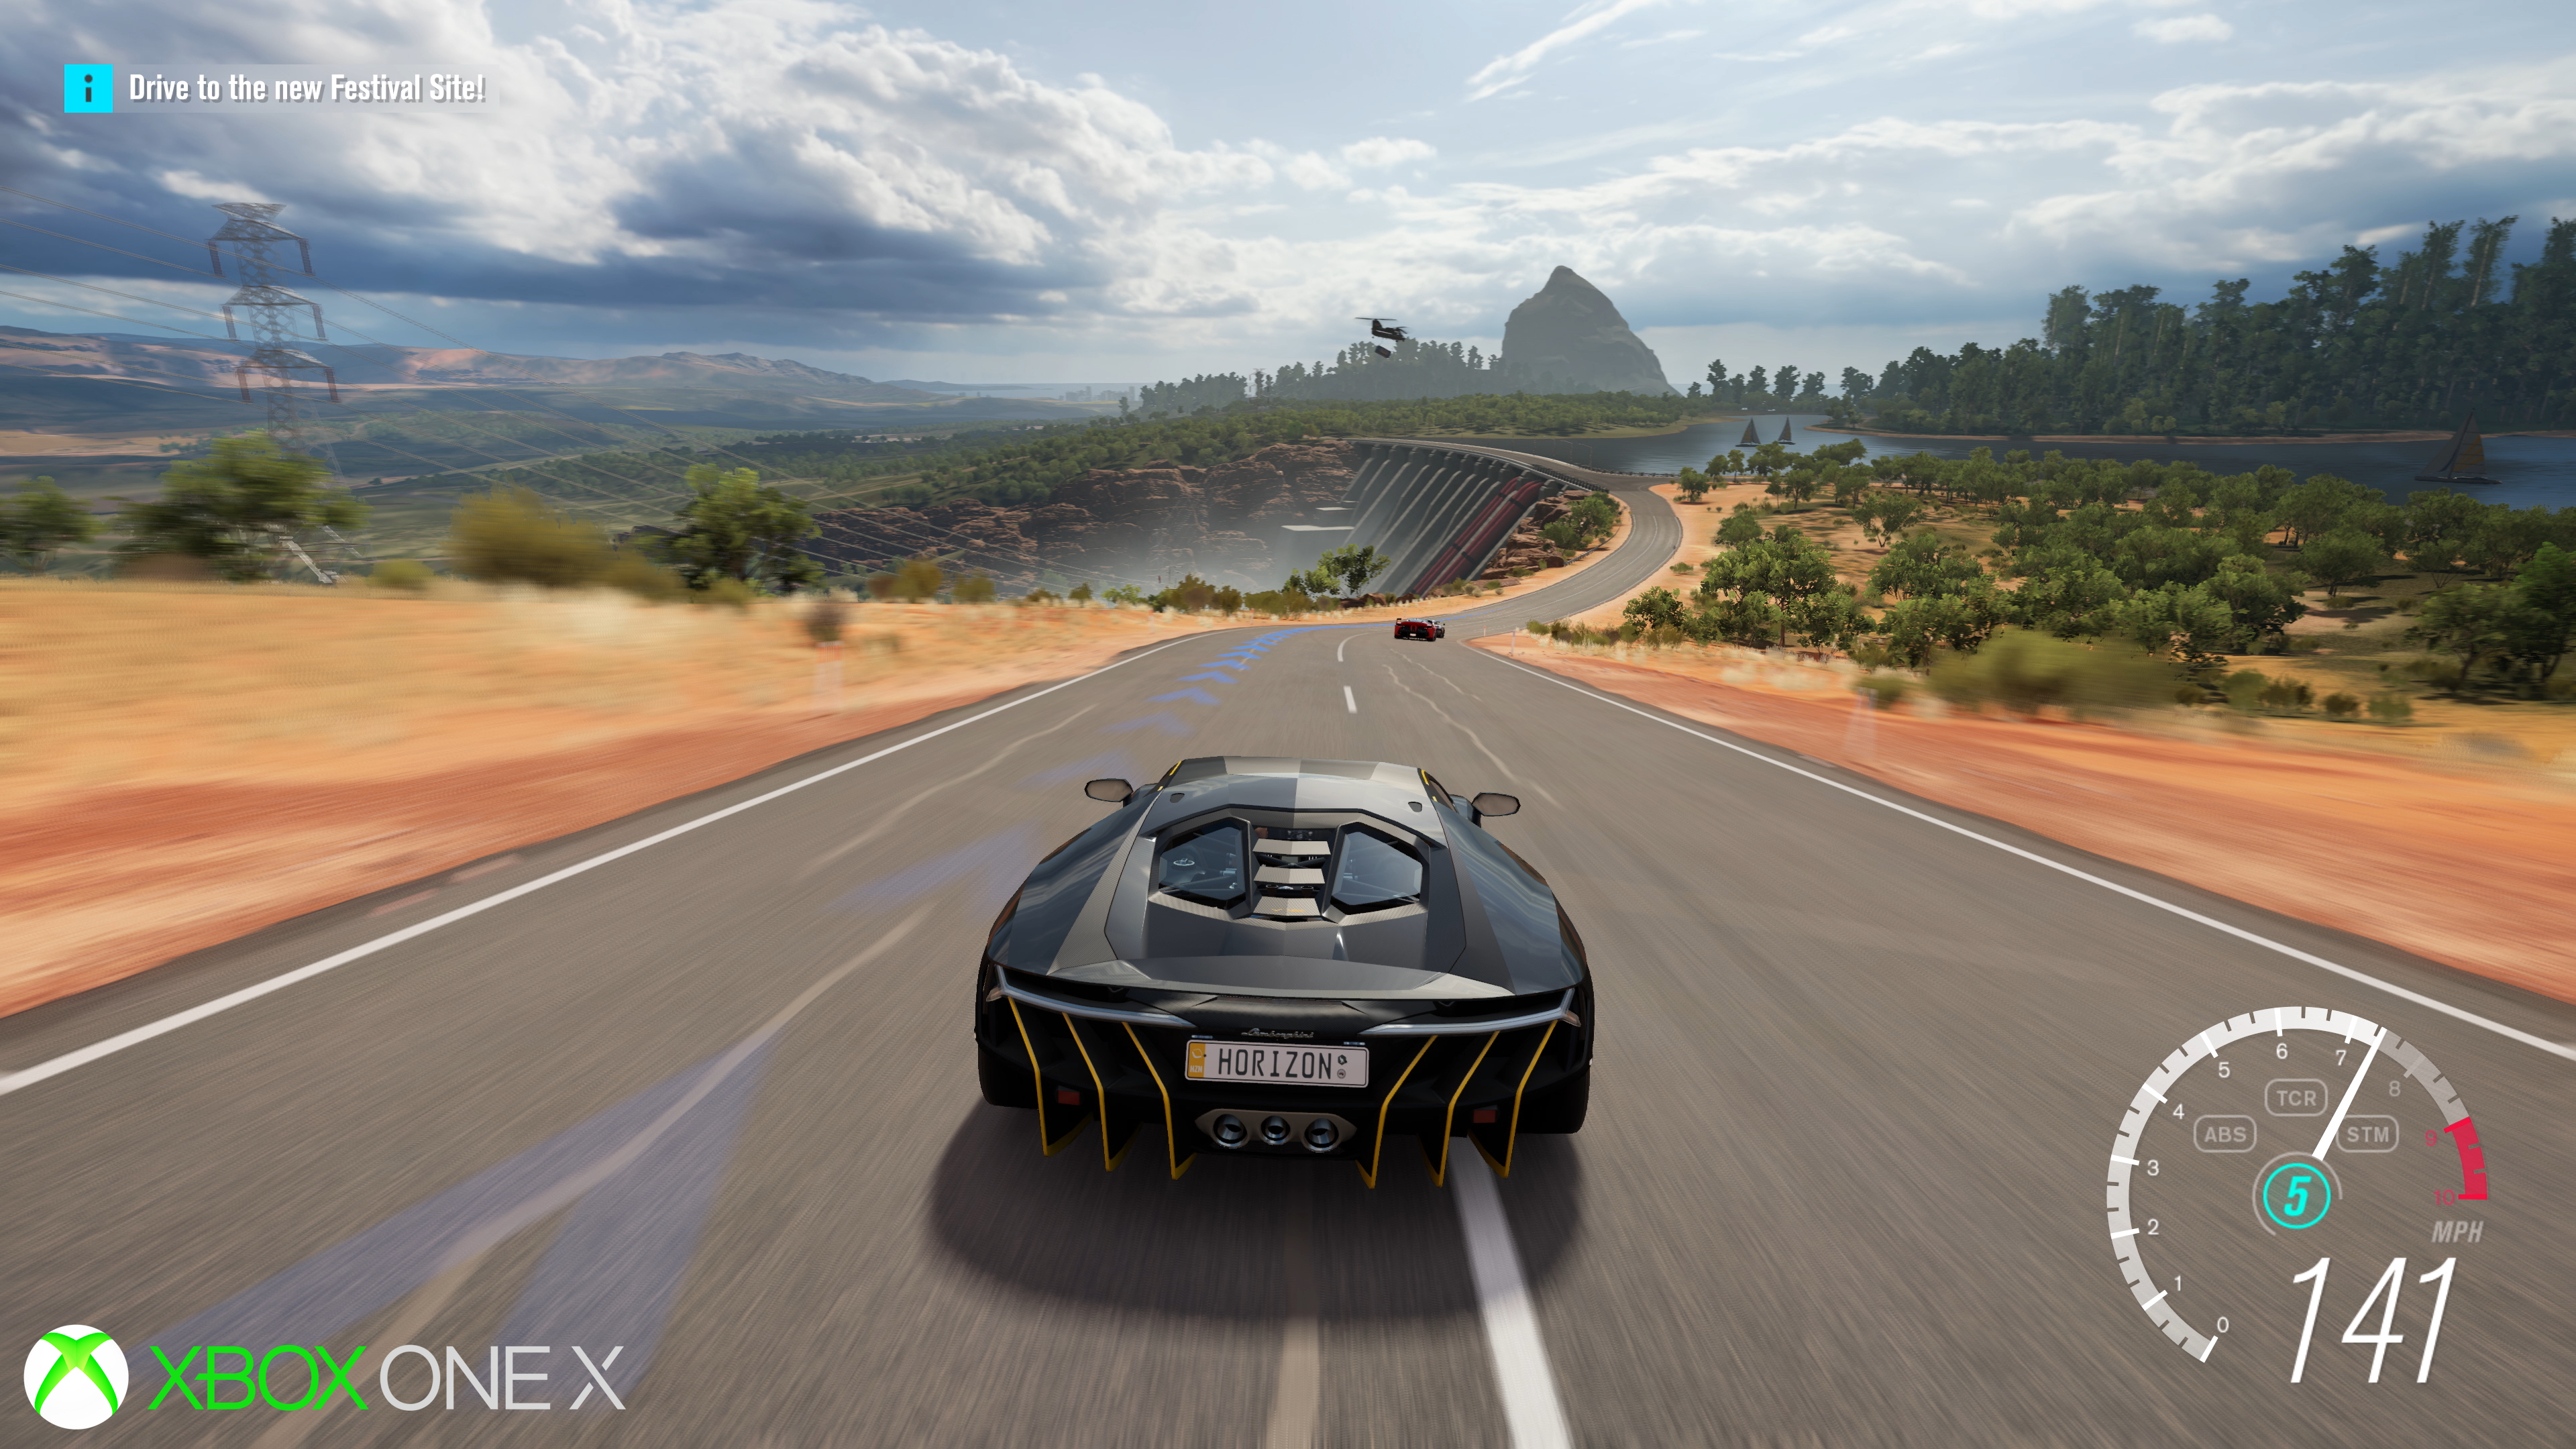 forza horizon 3 39 s xbox one x update is a true showcase for console 4k. Black Bedroom Furniture Sets. Home Design Ideas